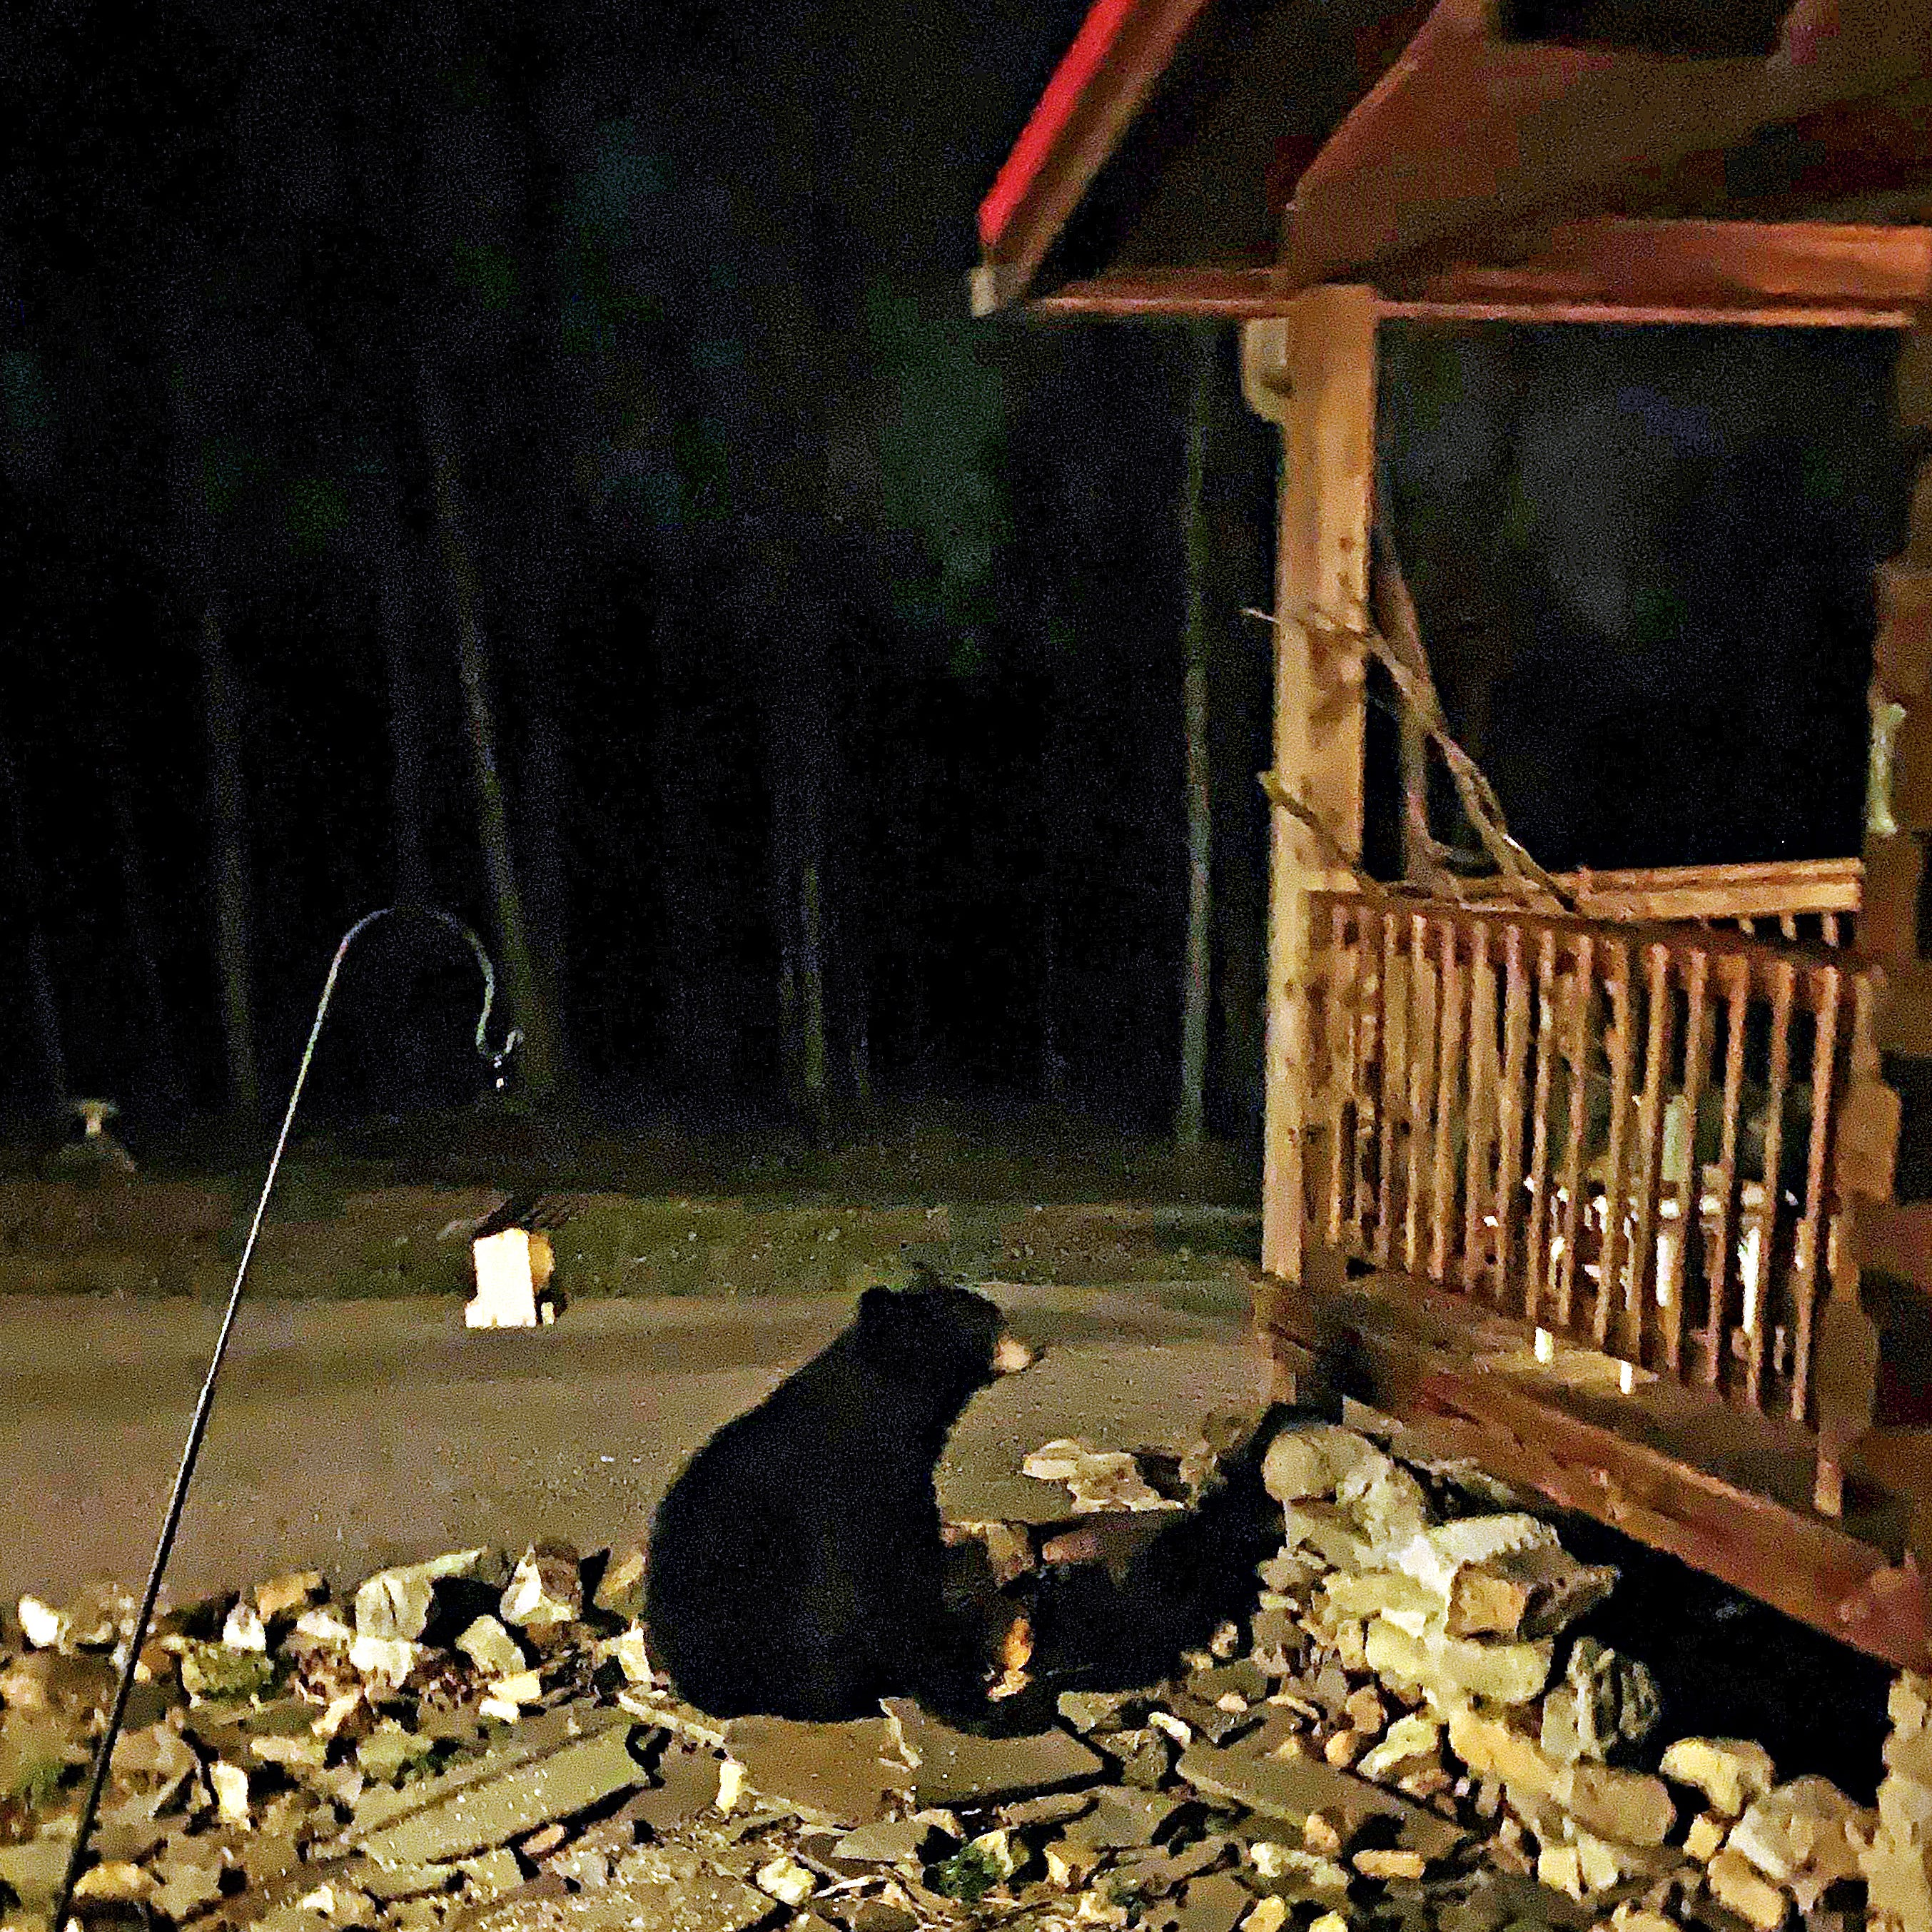 Hellam Twp. family watches and films as black bear snacks on birdseed